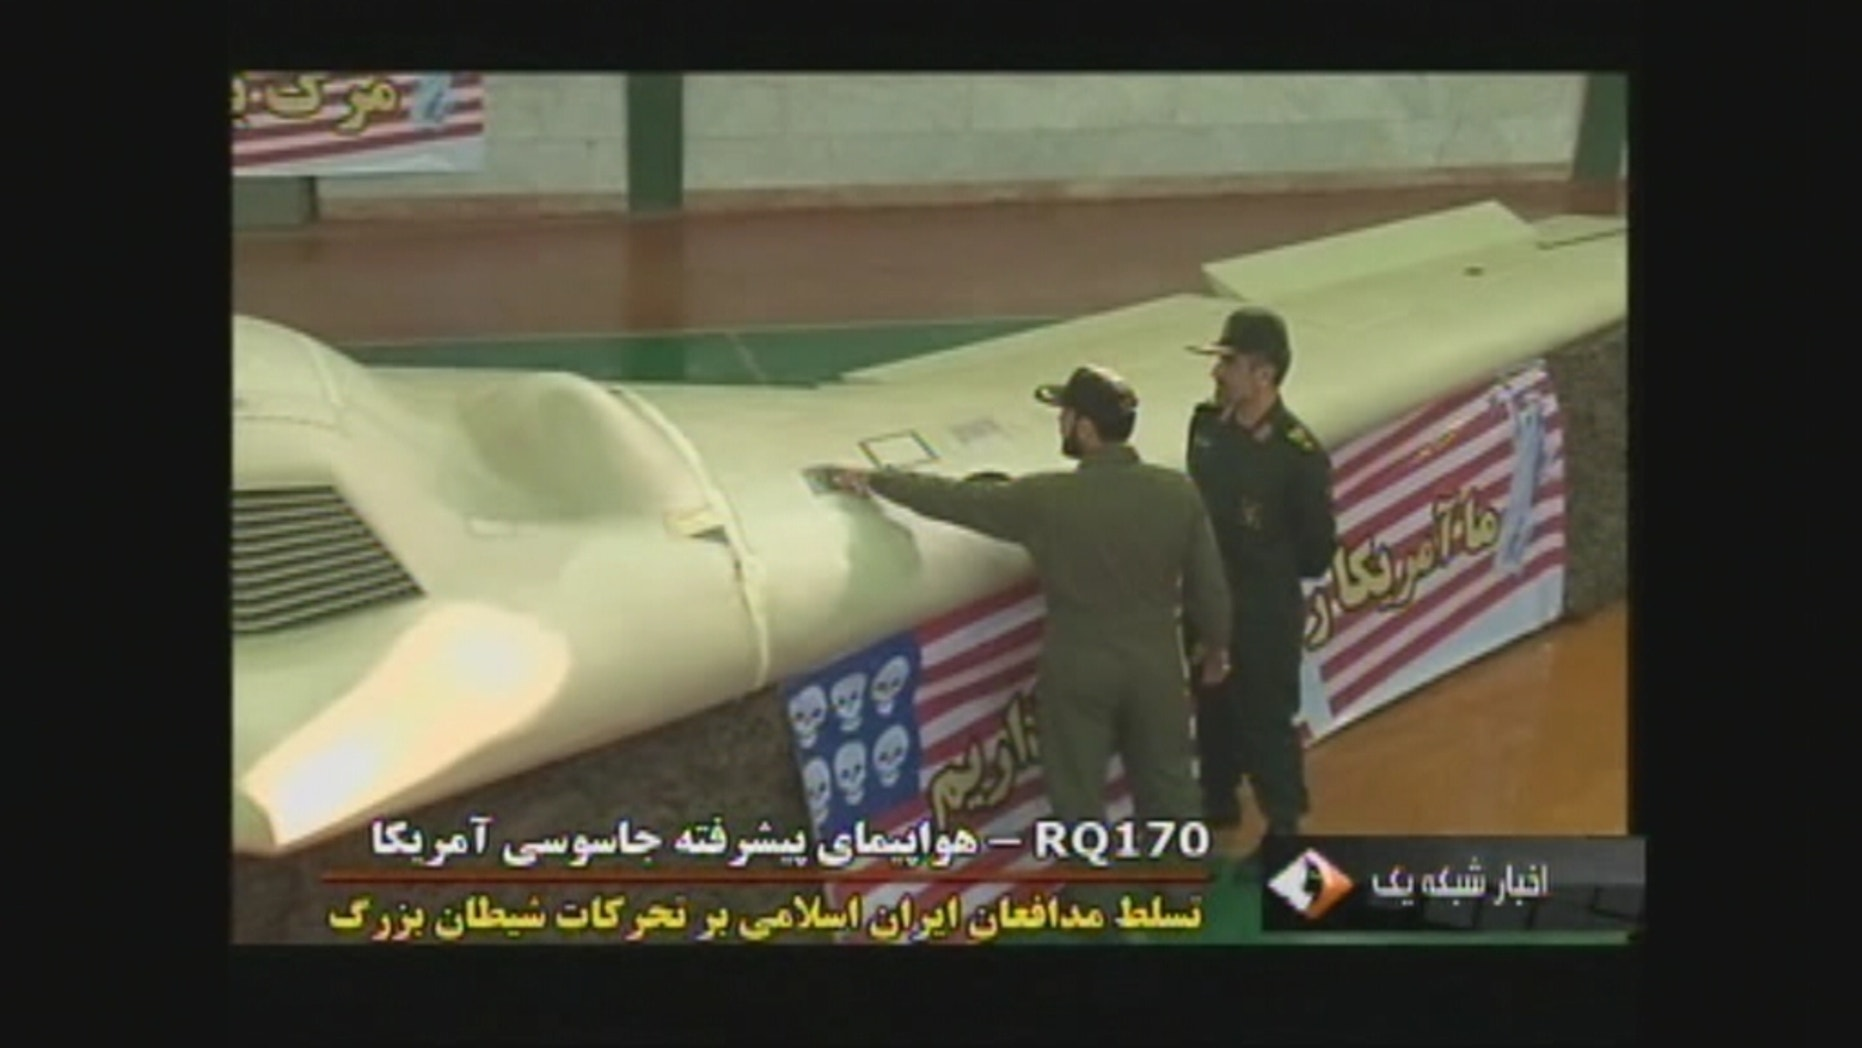 Dec. 8, 2011: Images aired by Iranian state television show the secret U.S. drone that went down last week in eastern Iran.